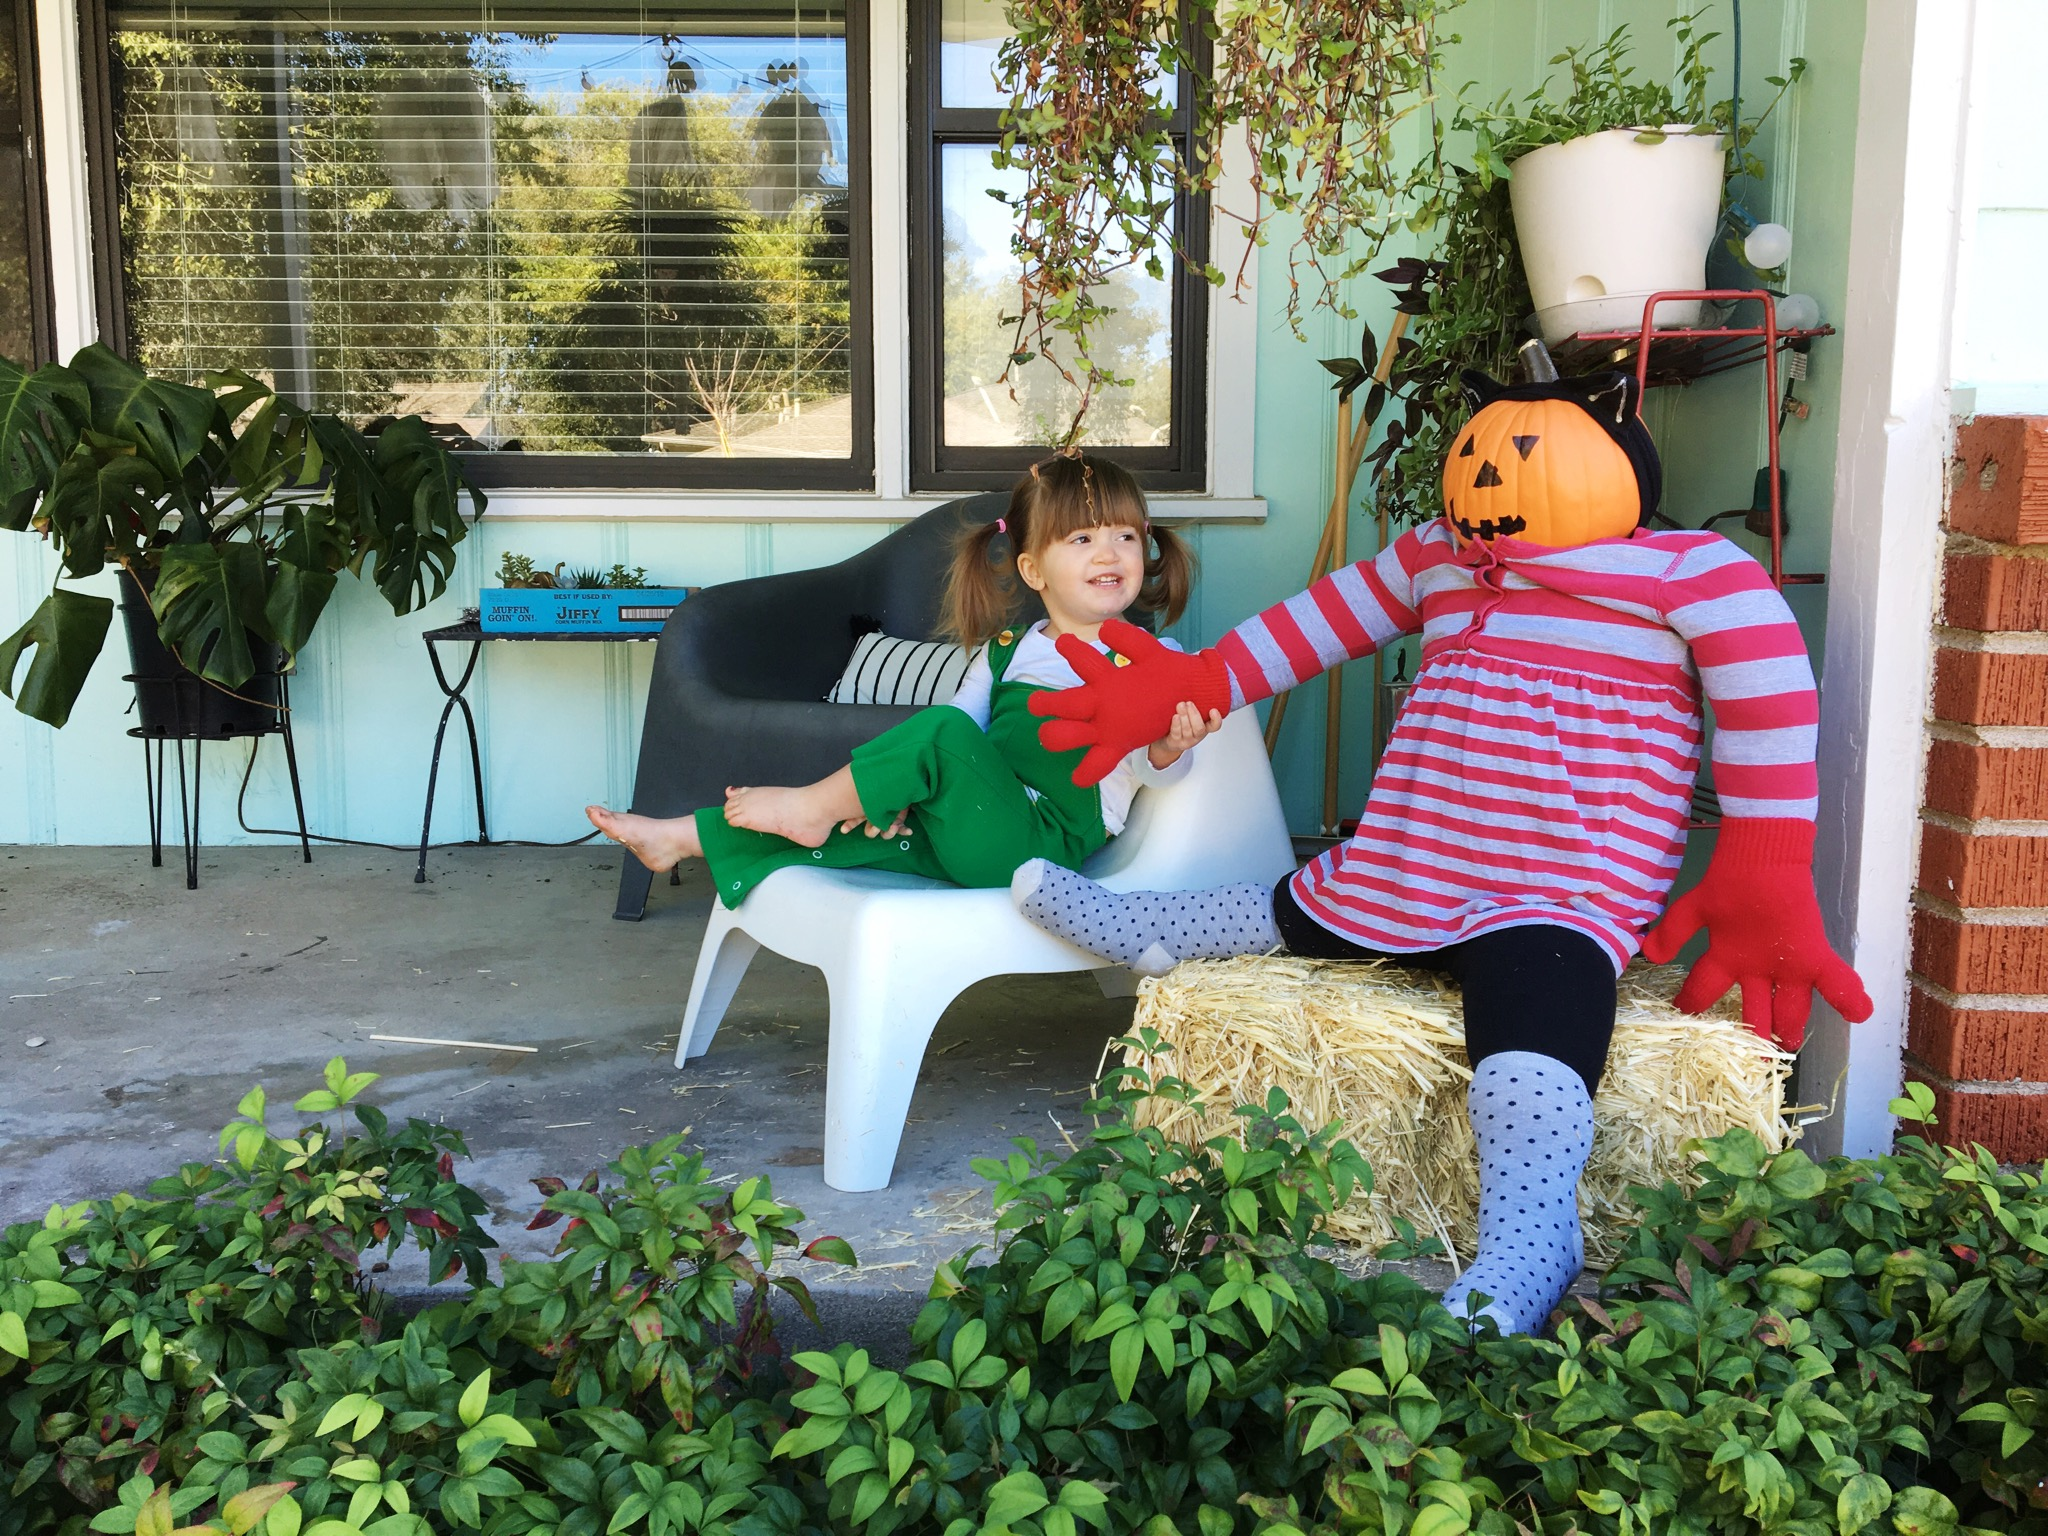 Happy fall! From Harriet and her porch scarecrow! We went to the thrift store and I let her pick out the outfit, then we stuffed it!